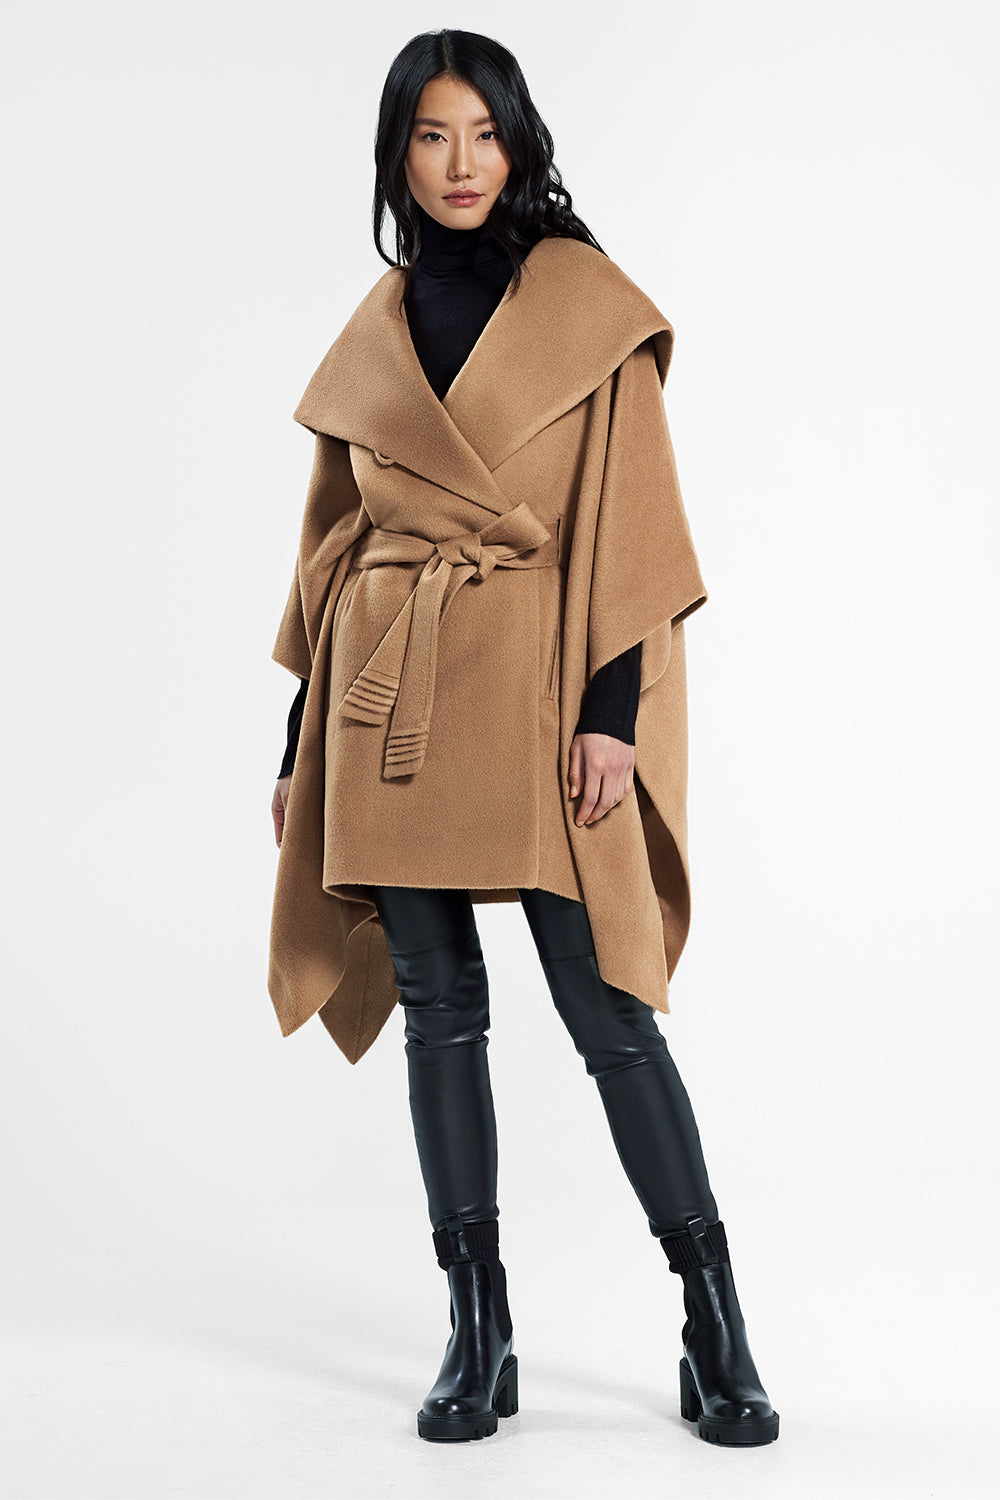 Sentaler Oversized Hooded Poncho with Belt featured in Baby Alpaca and available in Dark Camel. Seen from front.